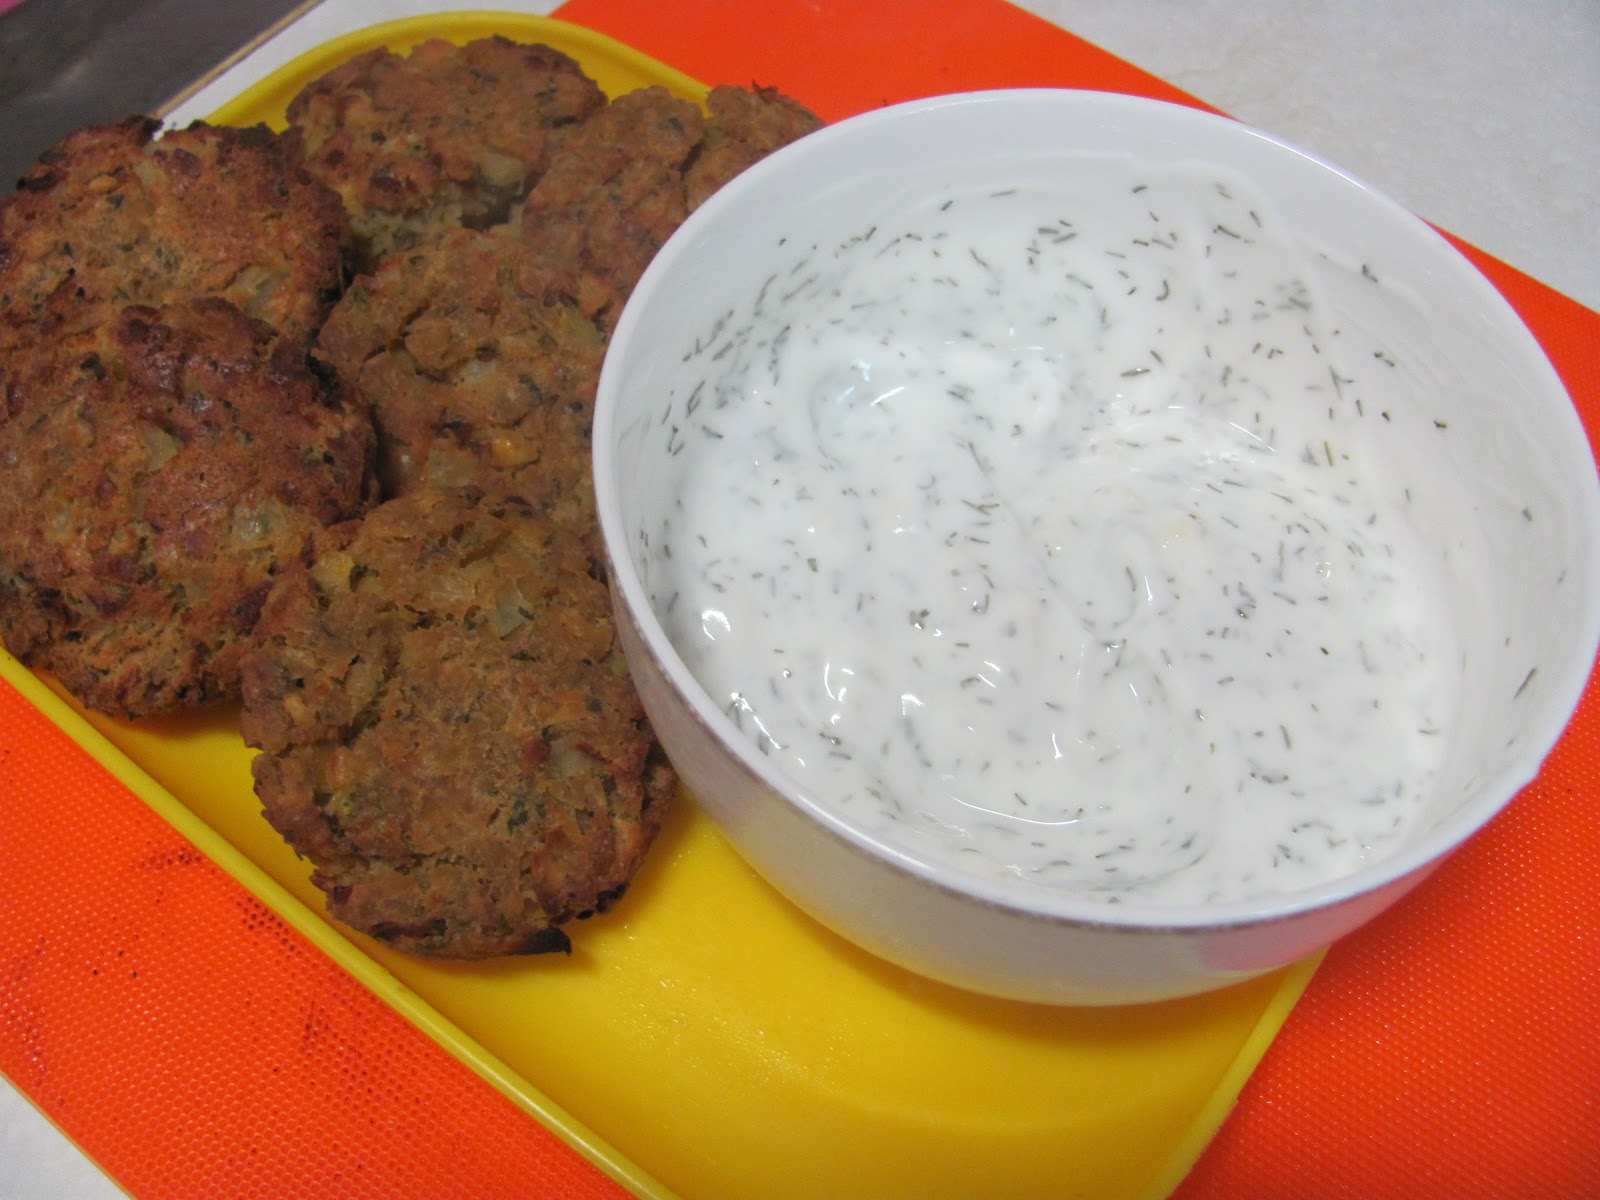 appetizer: falafel and yogurt dipping sauce